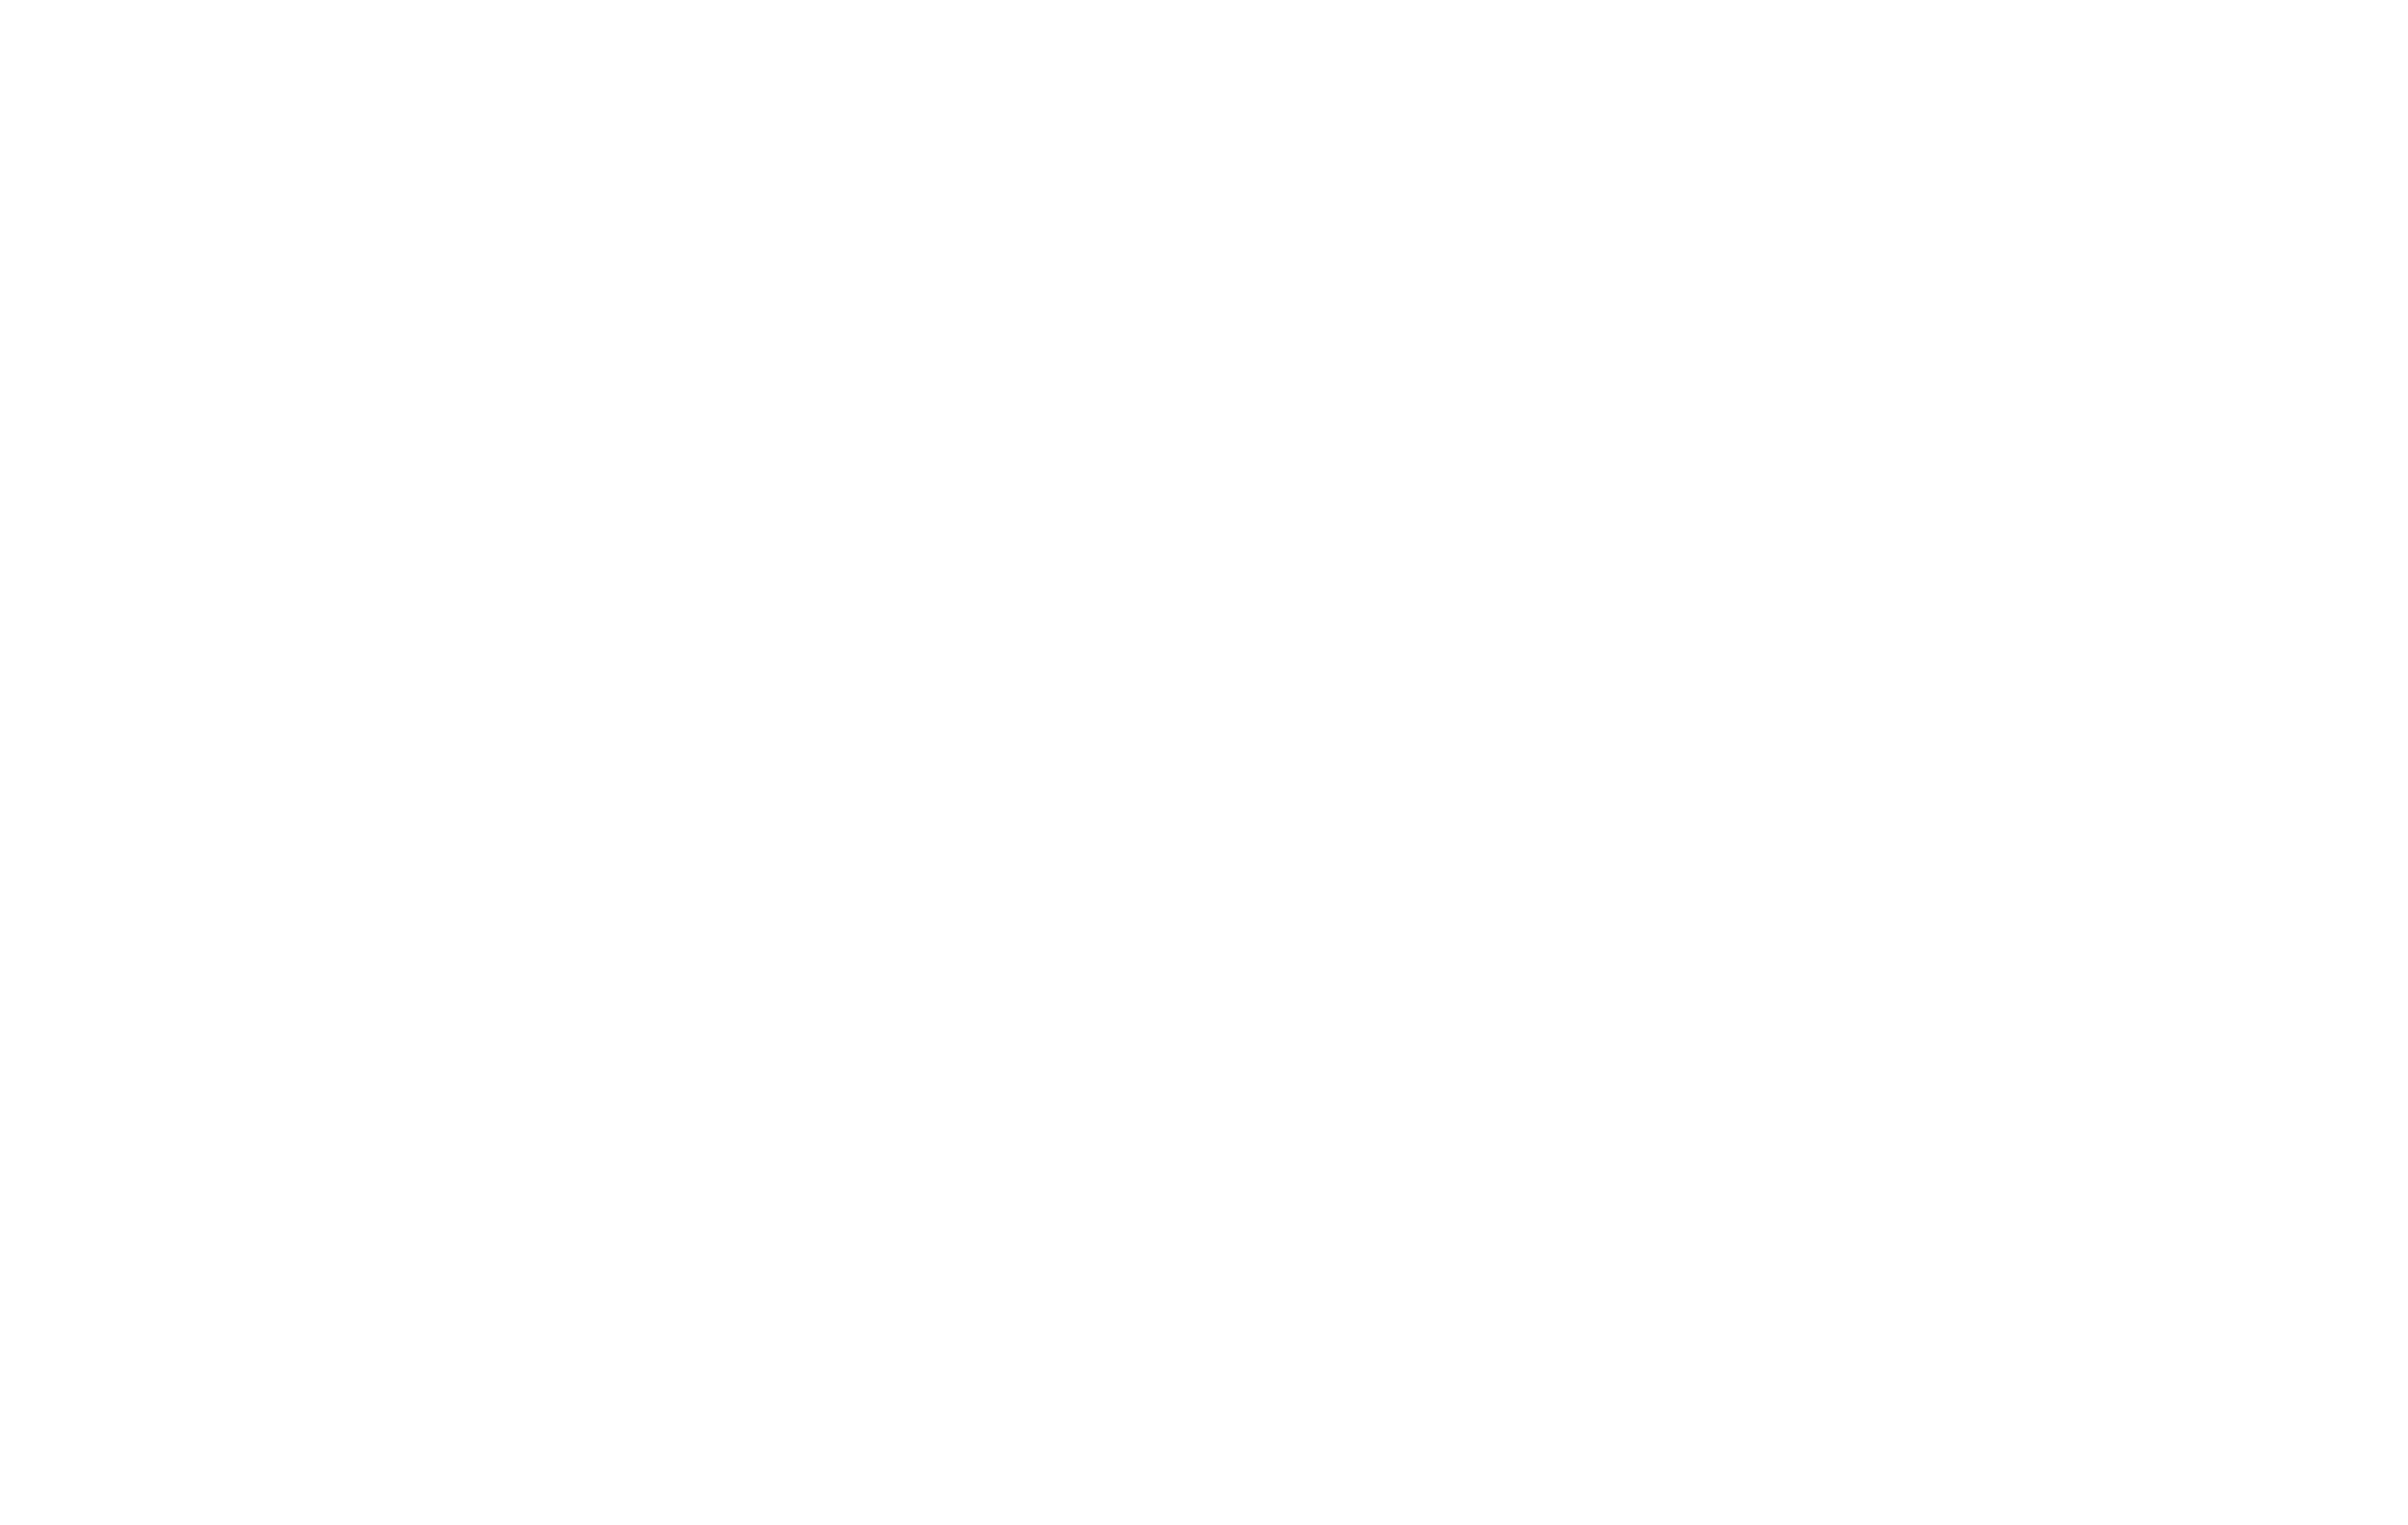 Southern hospitality header text